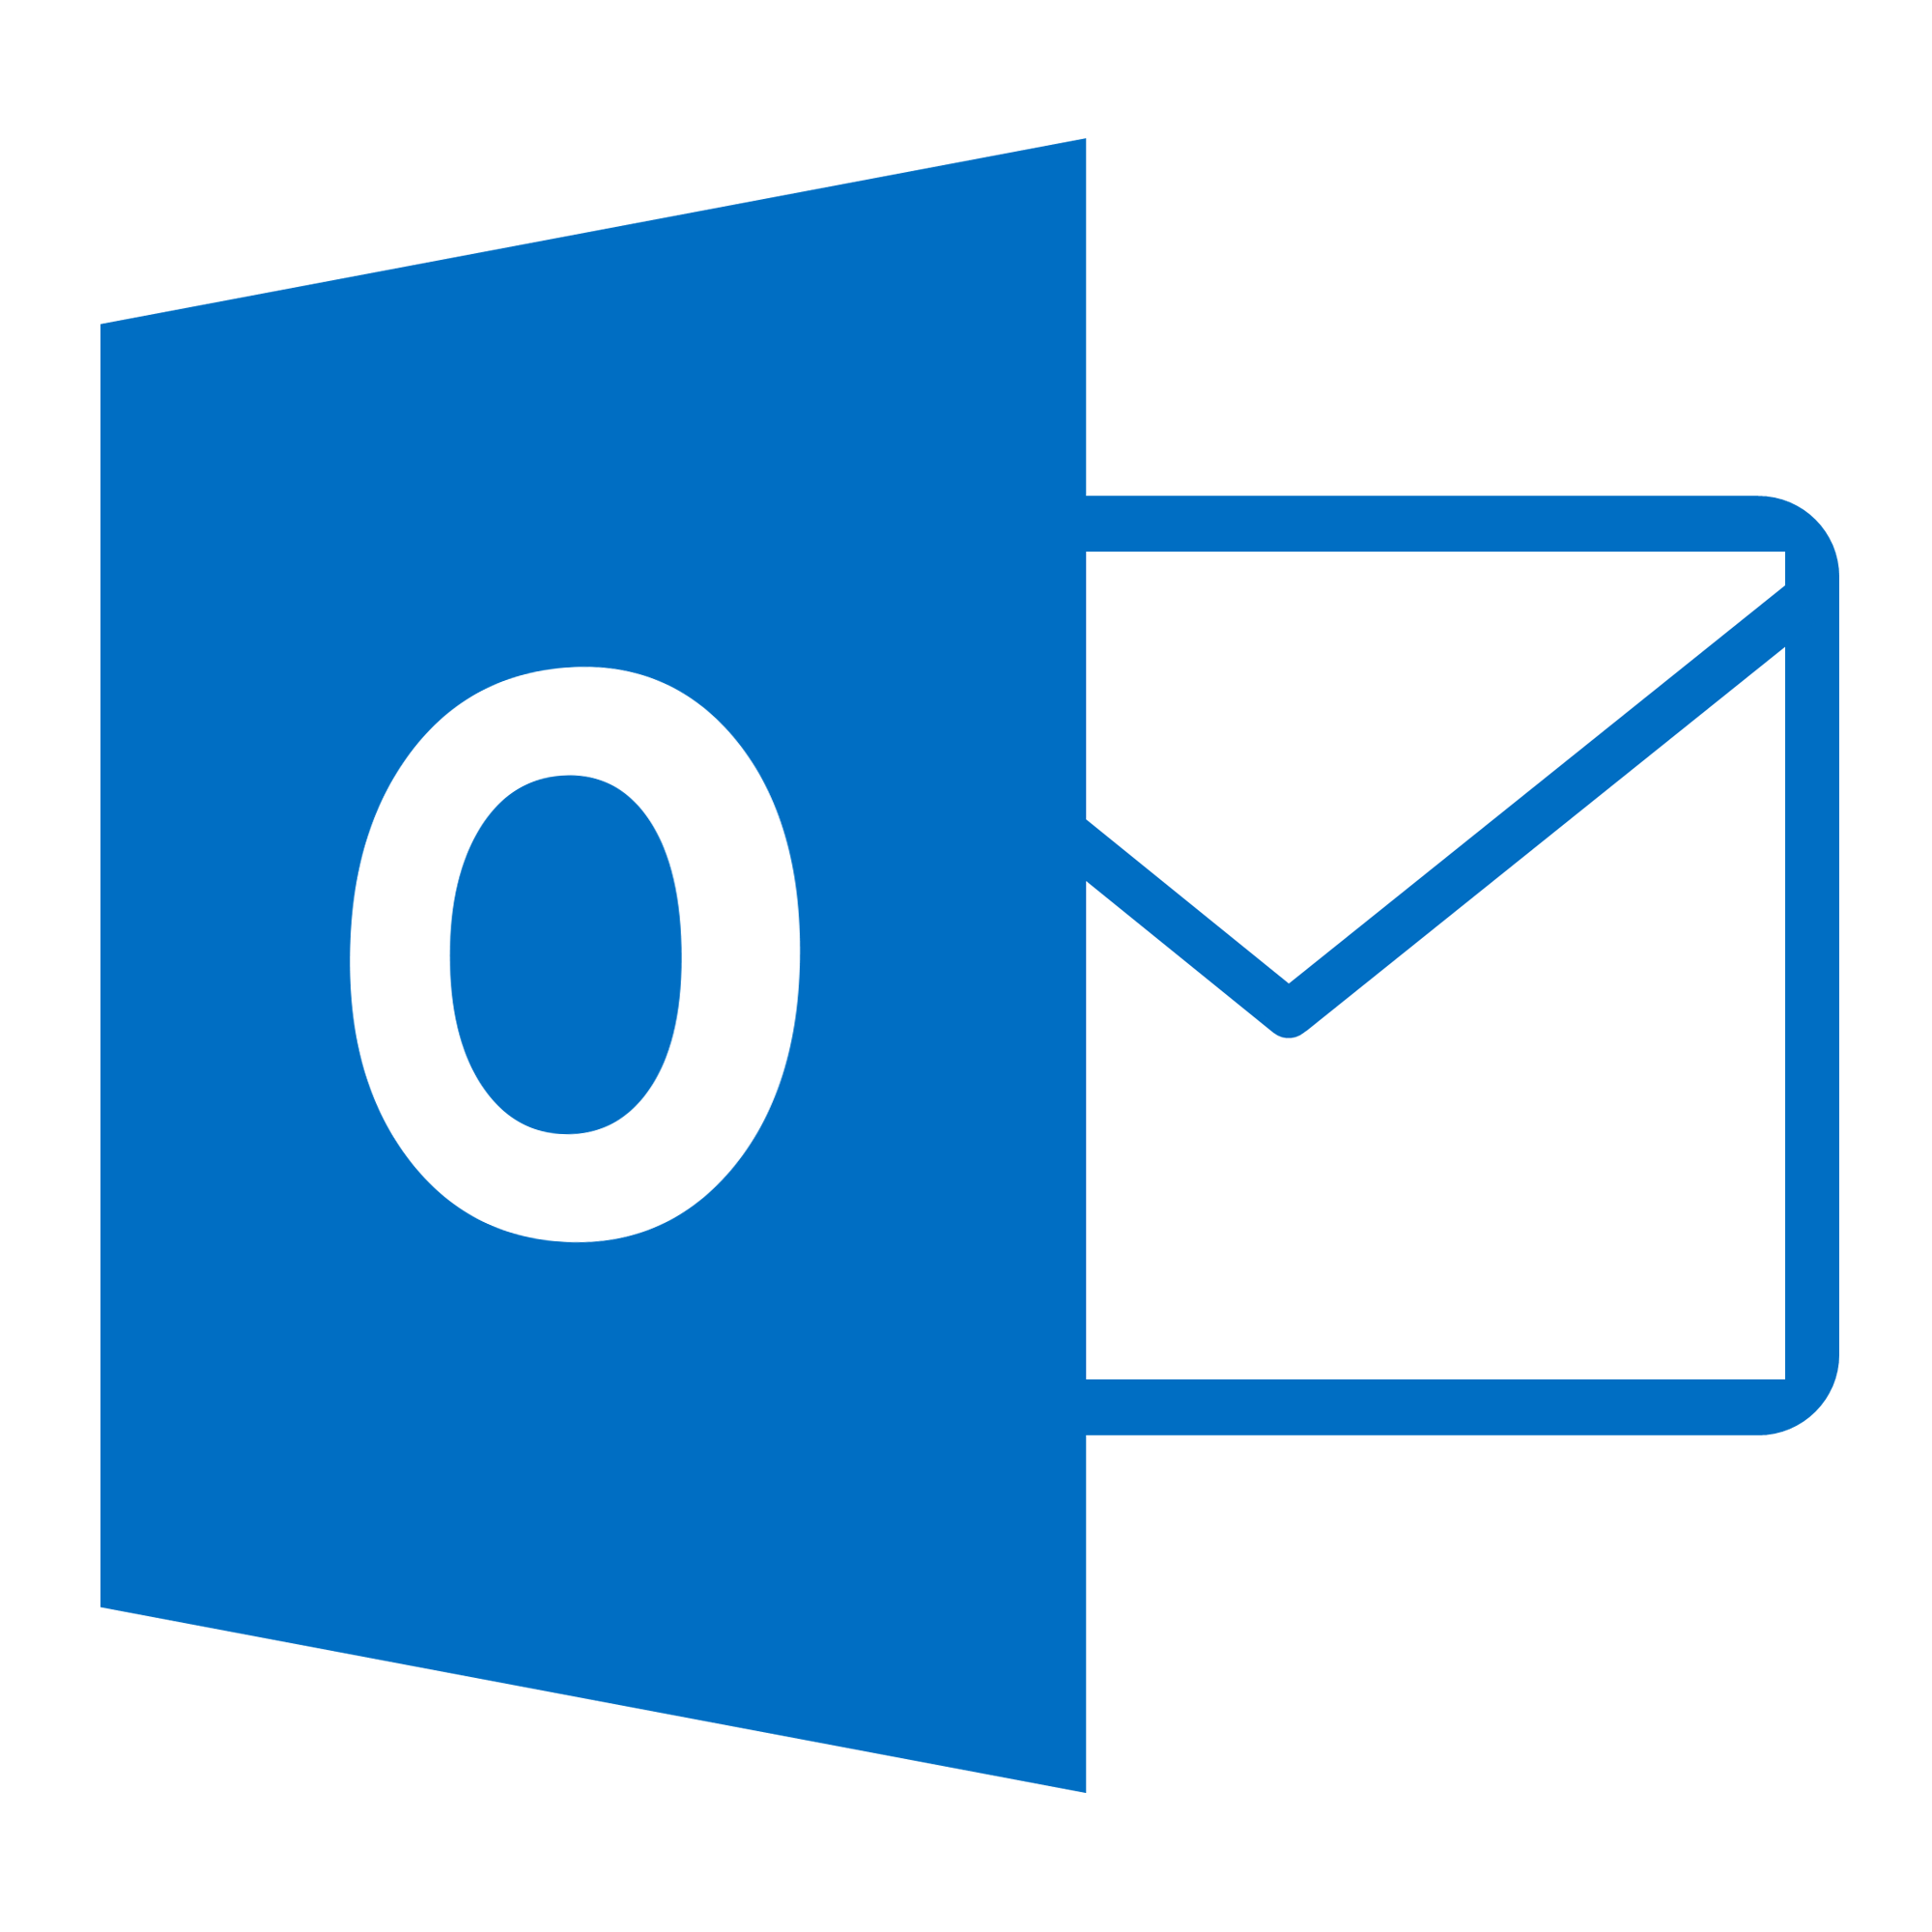 Outlook Icon Vector